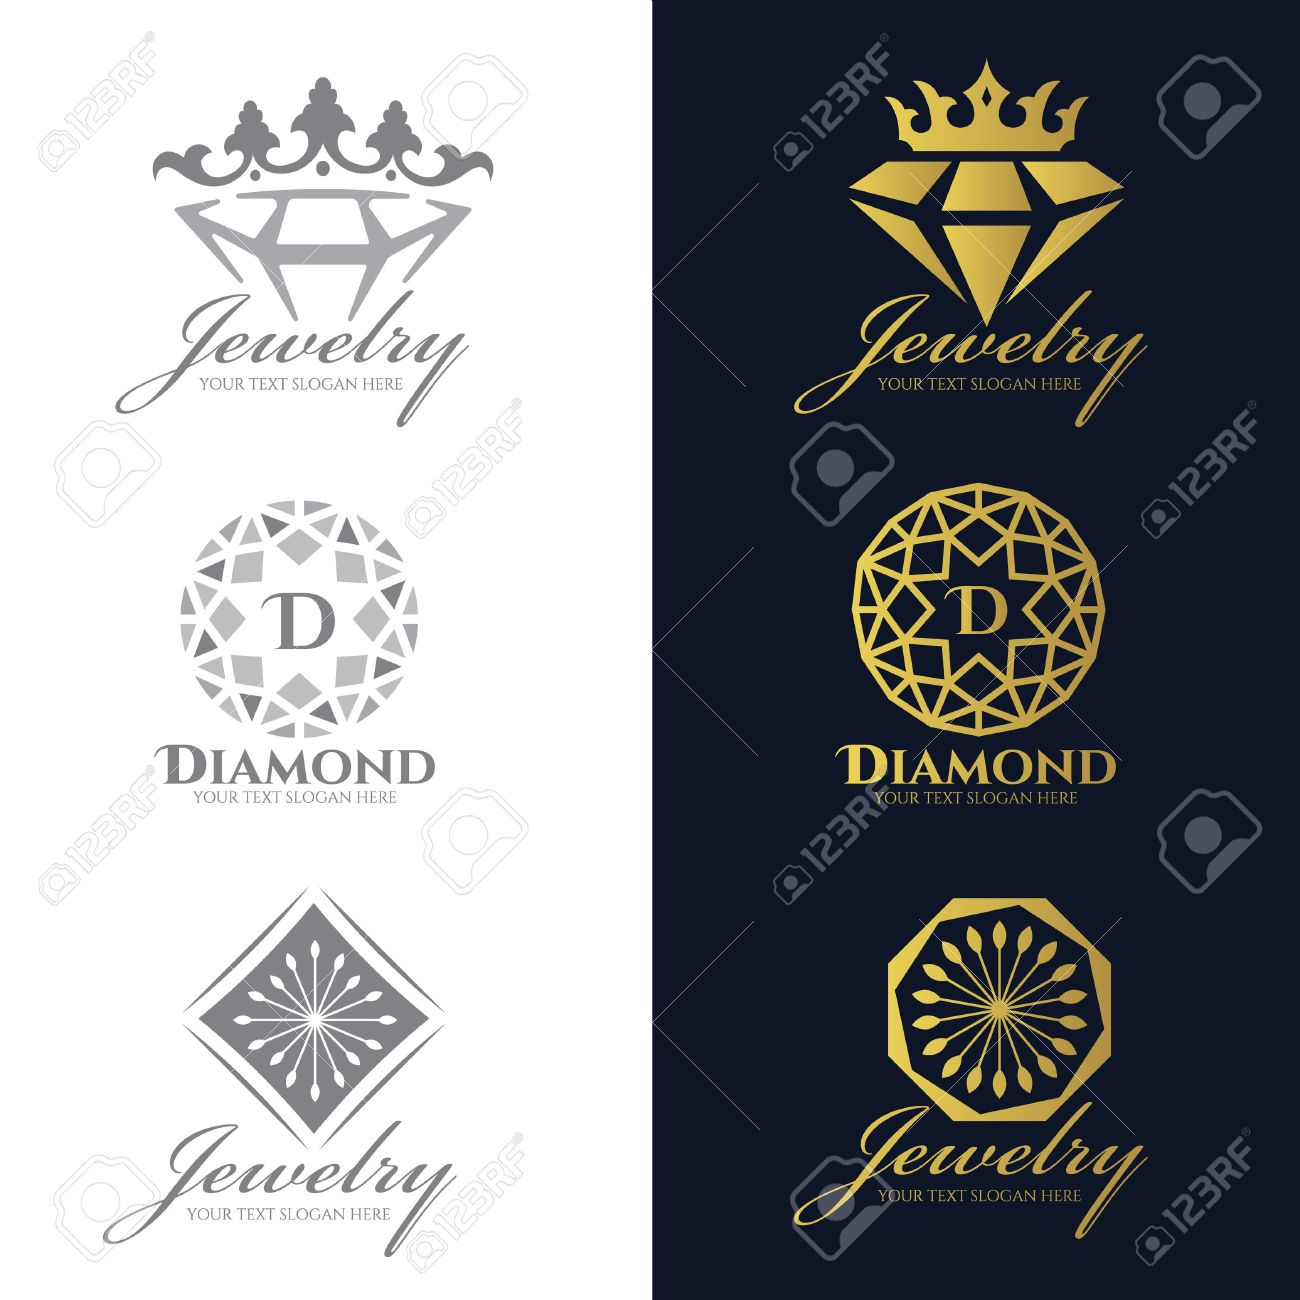 market royal pro templates diamond creative assets arslan next logo